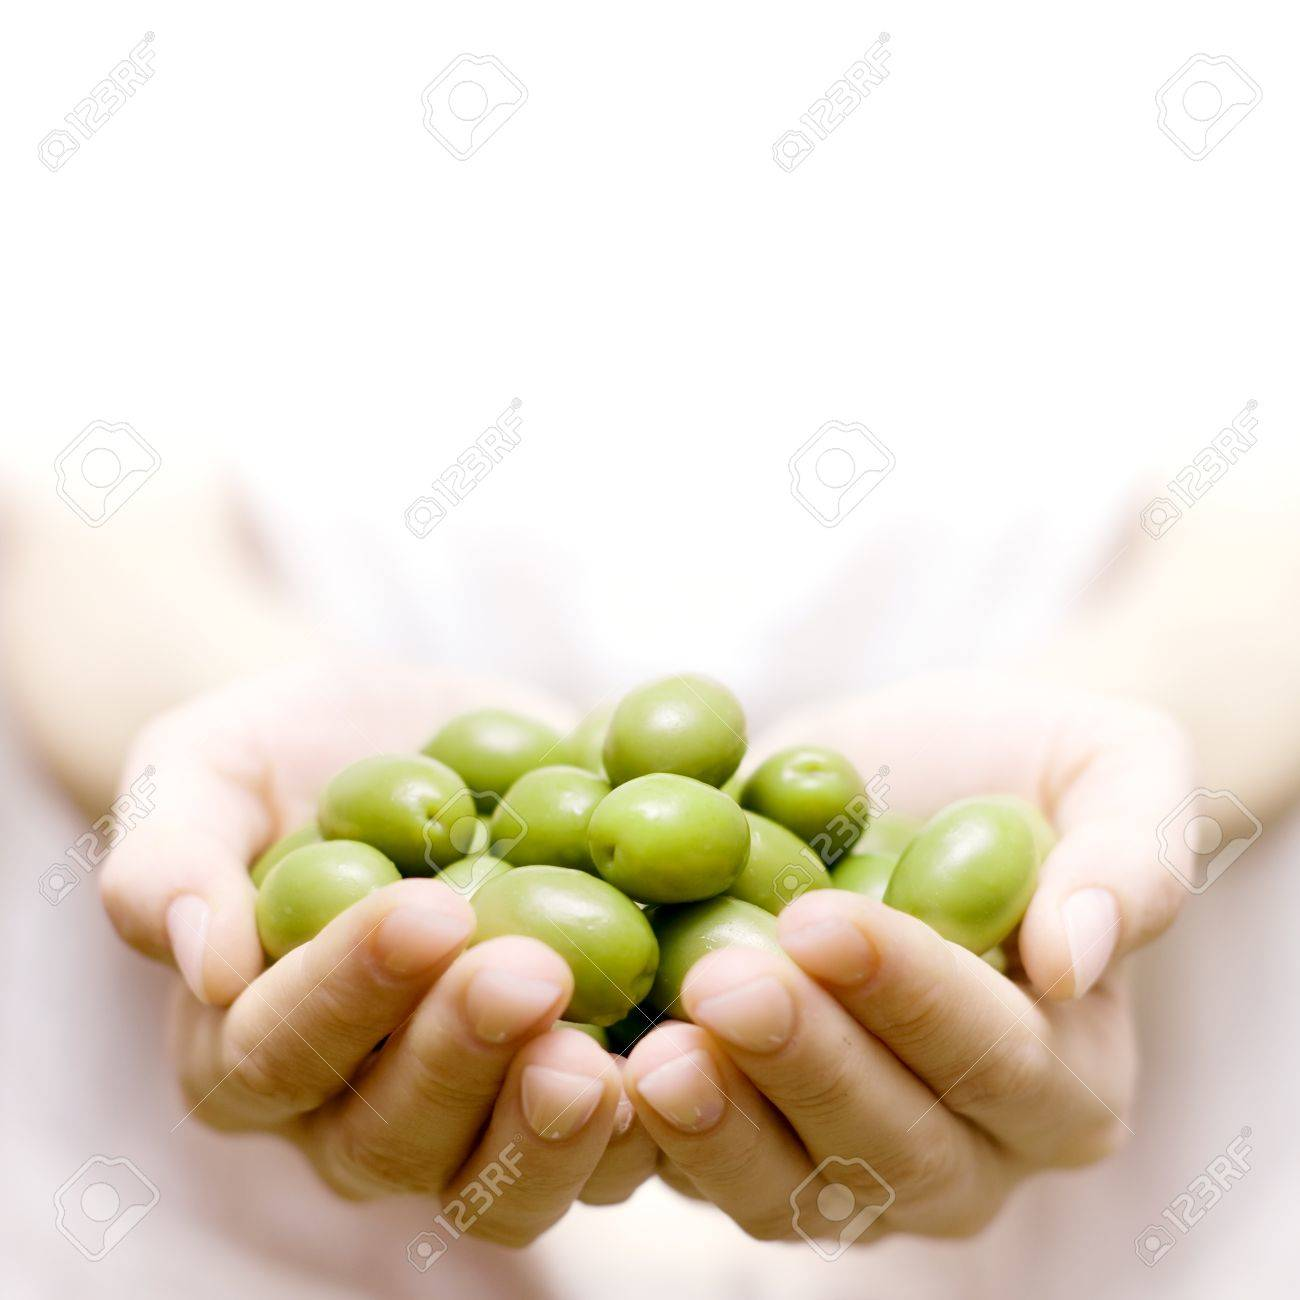 Human hands holding green olive with space for text - 13548534